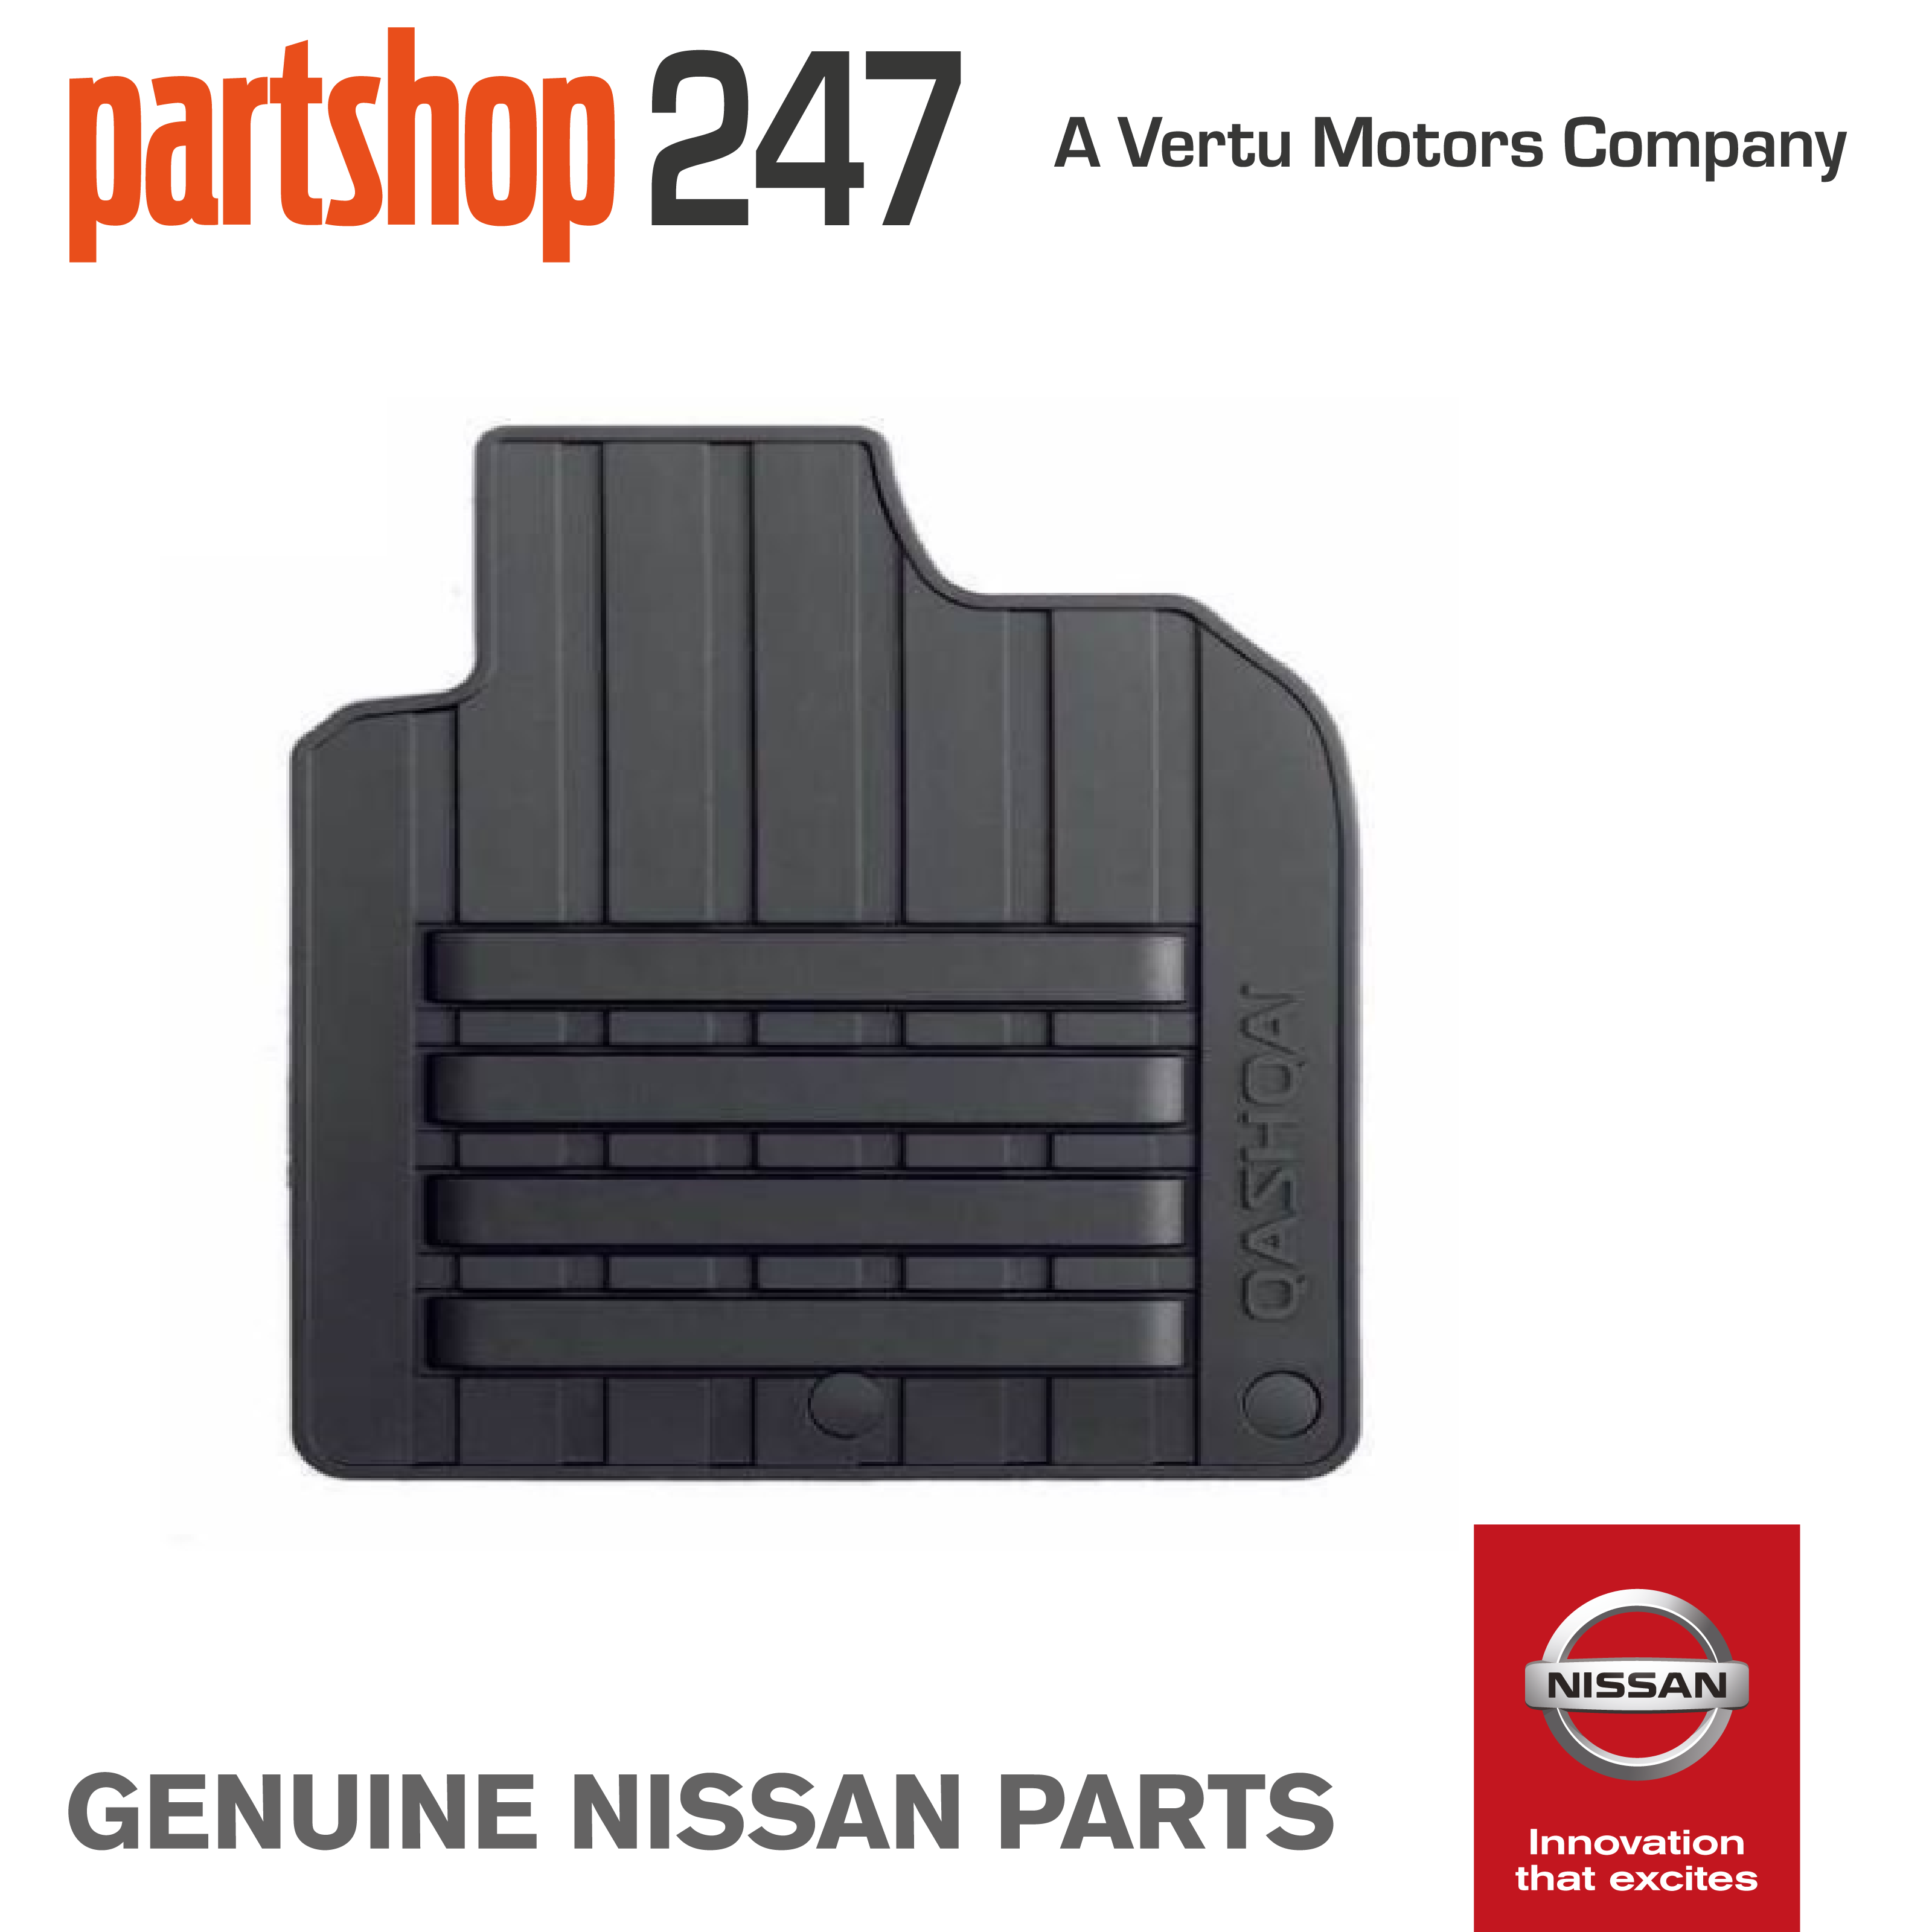 Floor mats qashqai - Genuine Nissan Qashqai 07 14 Car Rubber Floor Mats Tailored X4 Ke758jd089ns